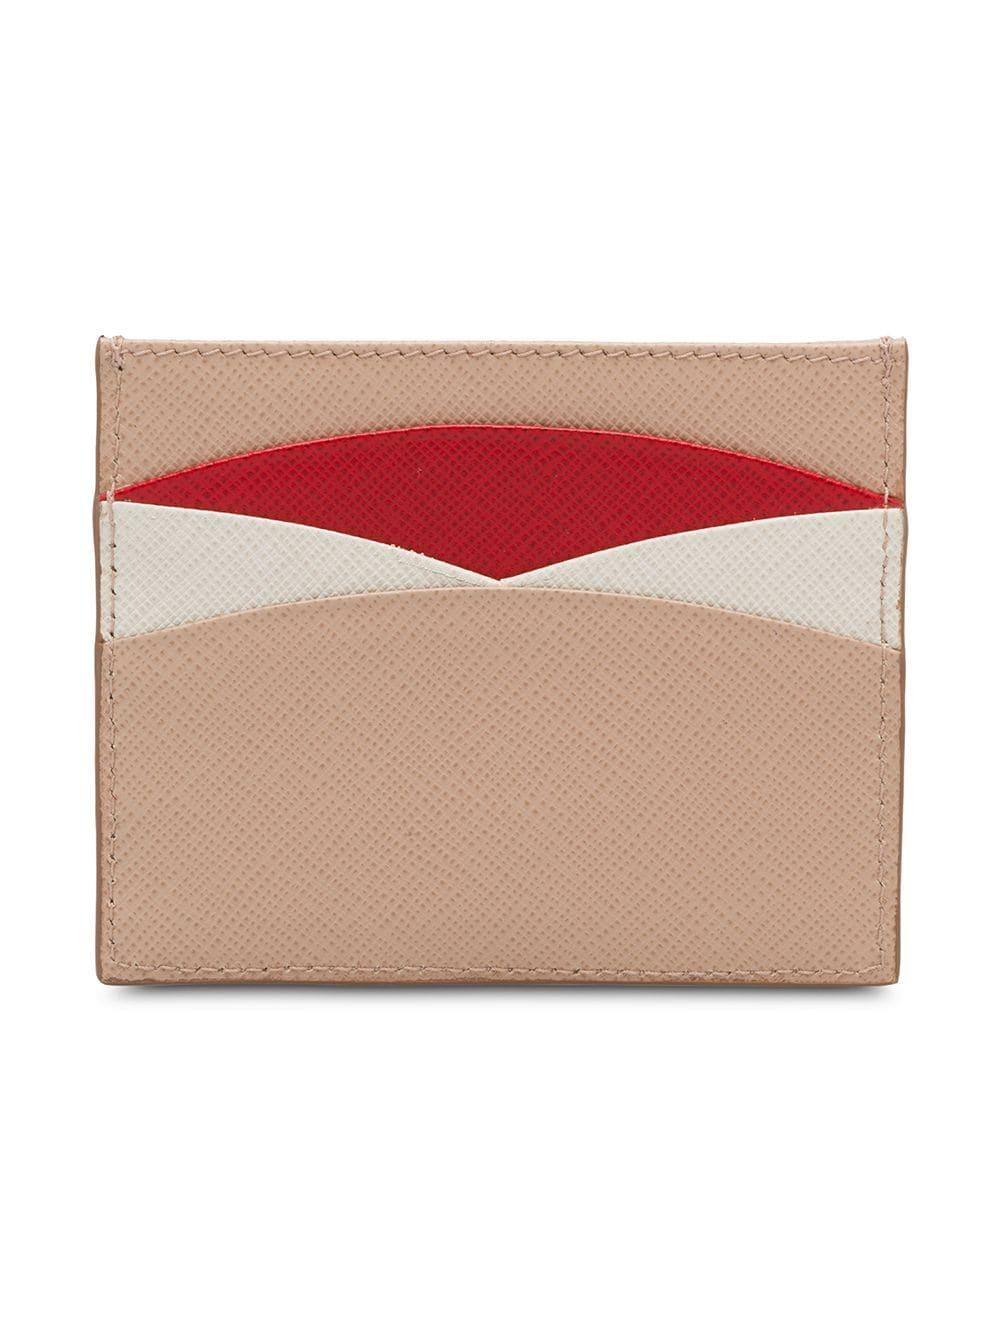 c6746af97102 Lyst - Prada Saffiano Leather Credit Card Holder in Pink